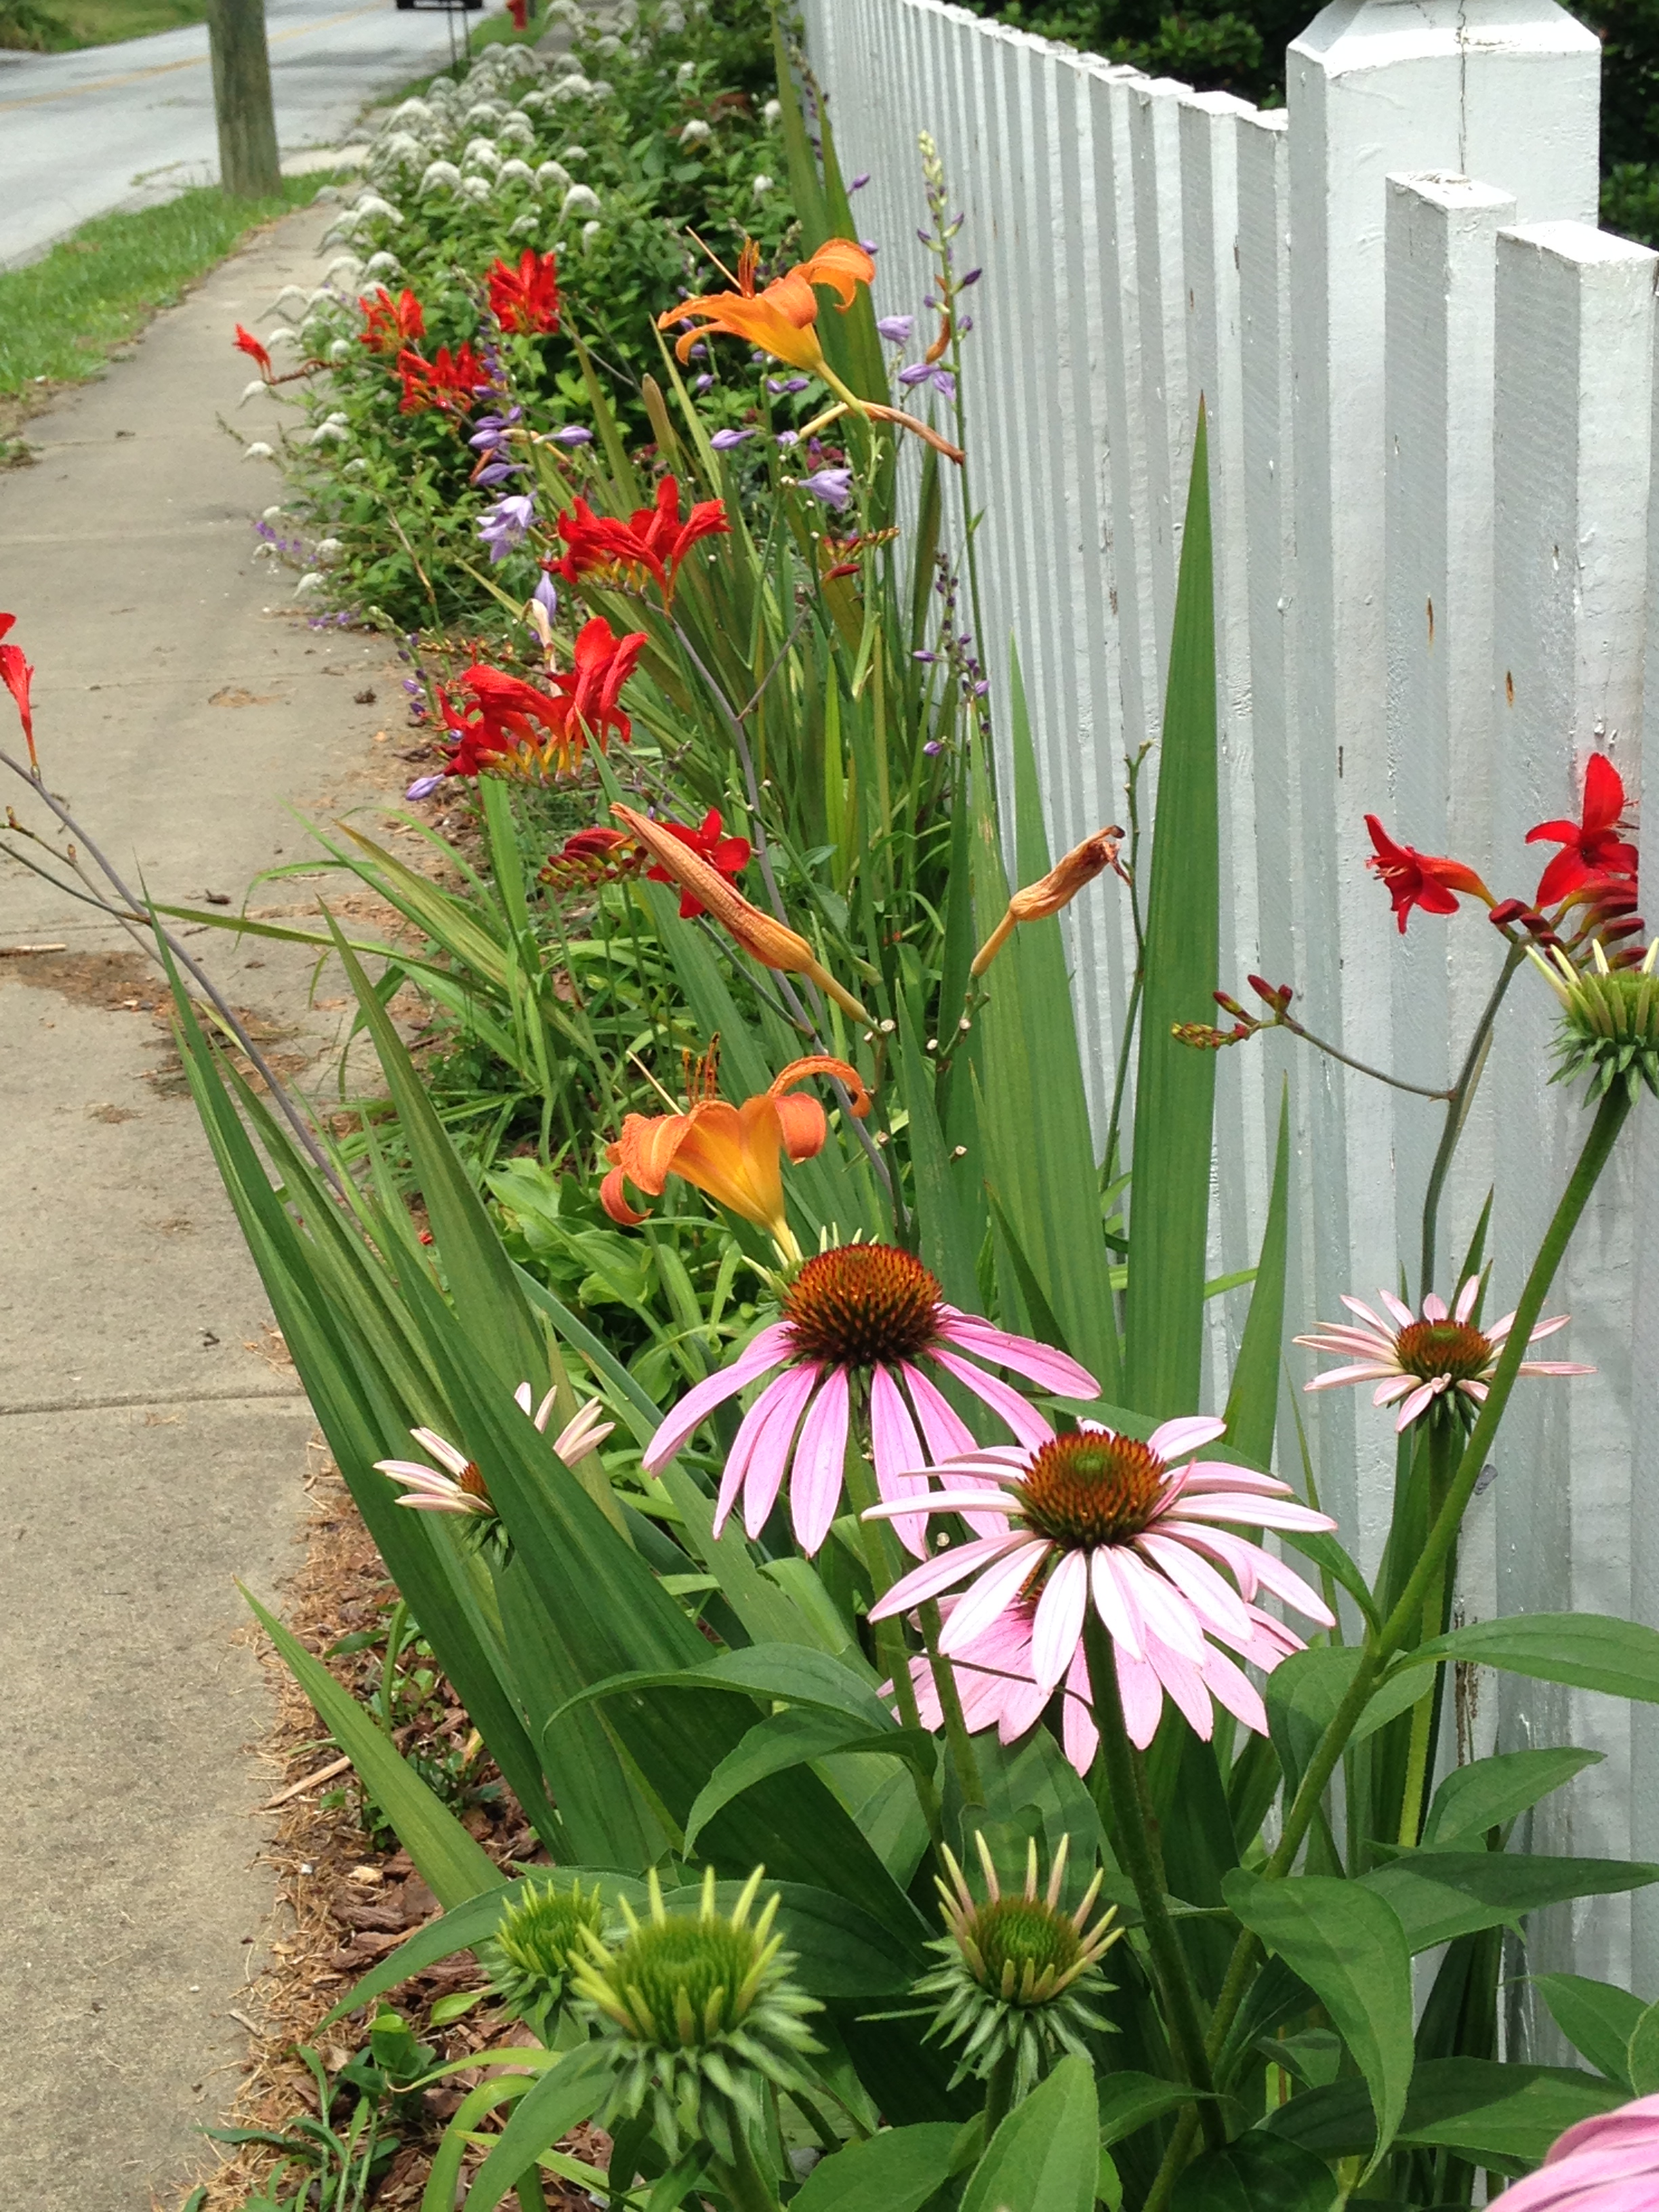 Summer blooms along picket fence